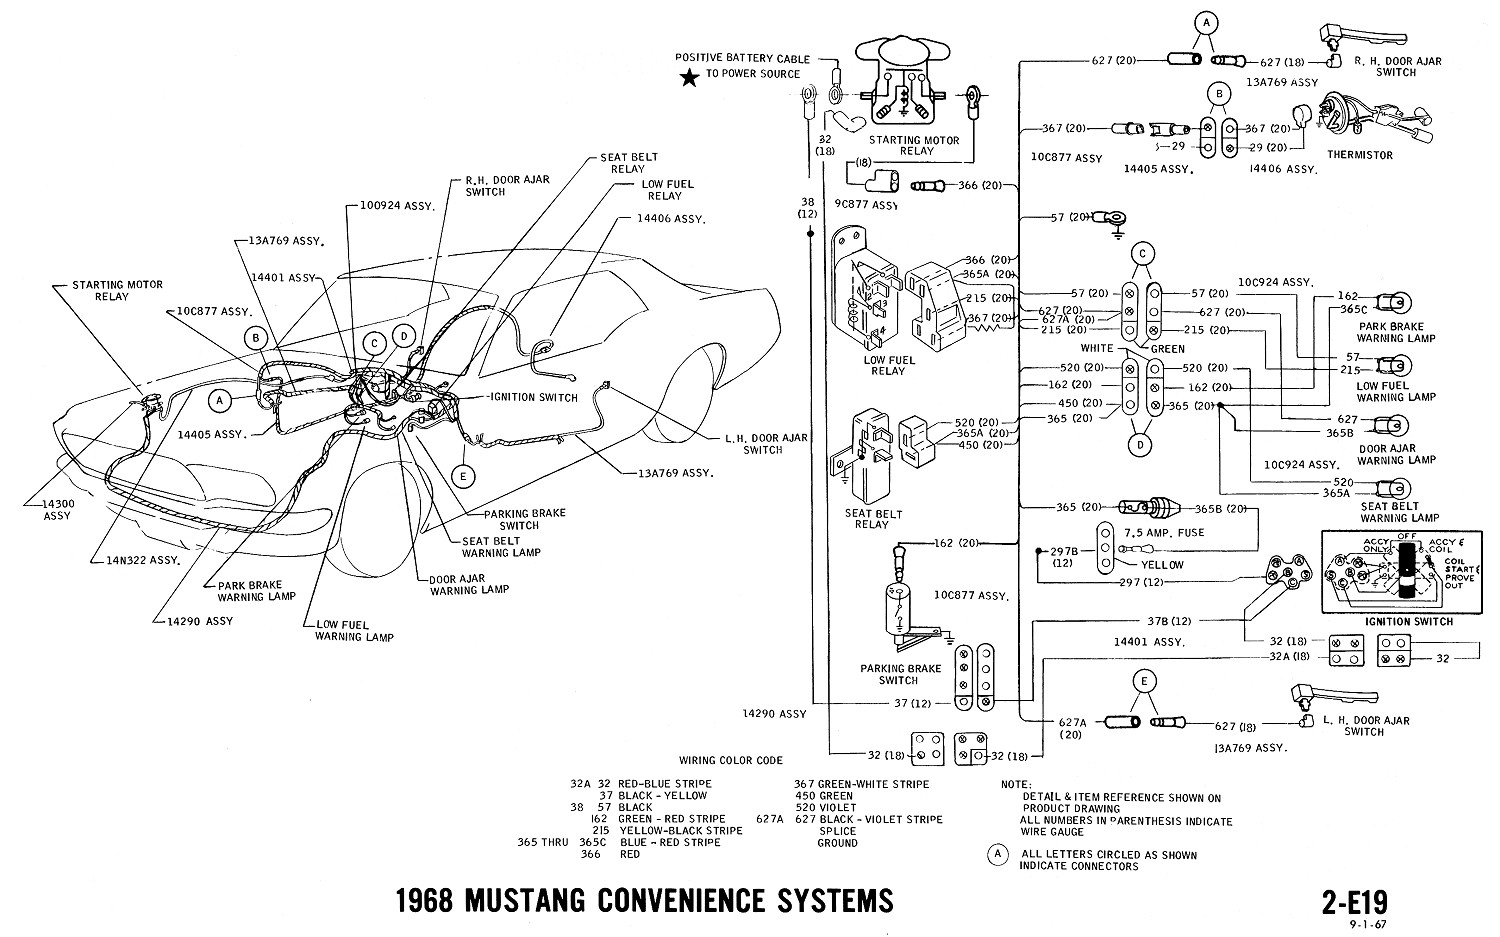 hight resolution of 1968 mustang wiring diagram convenience systems